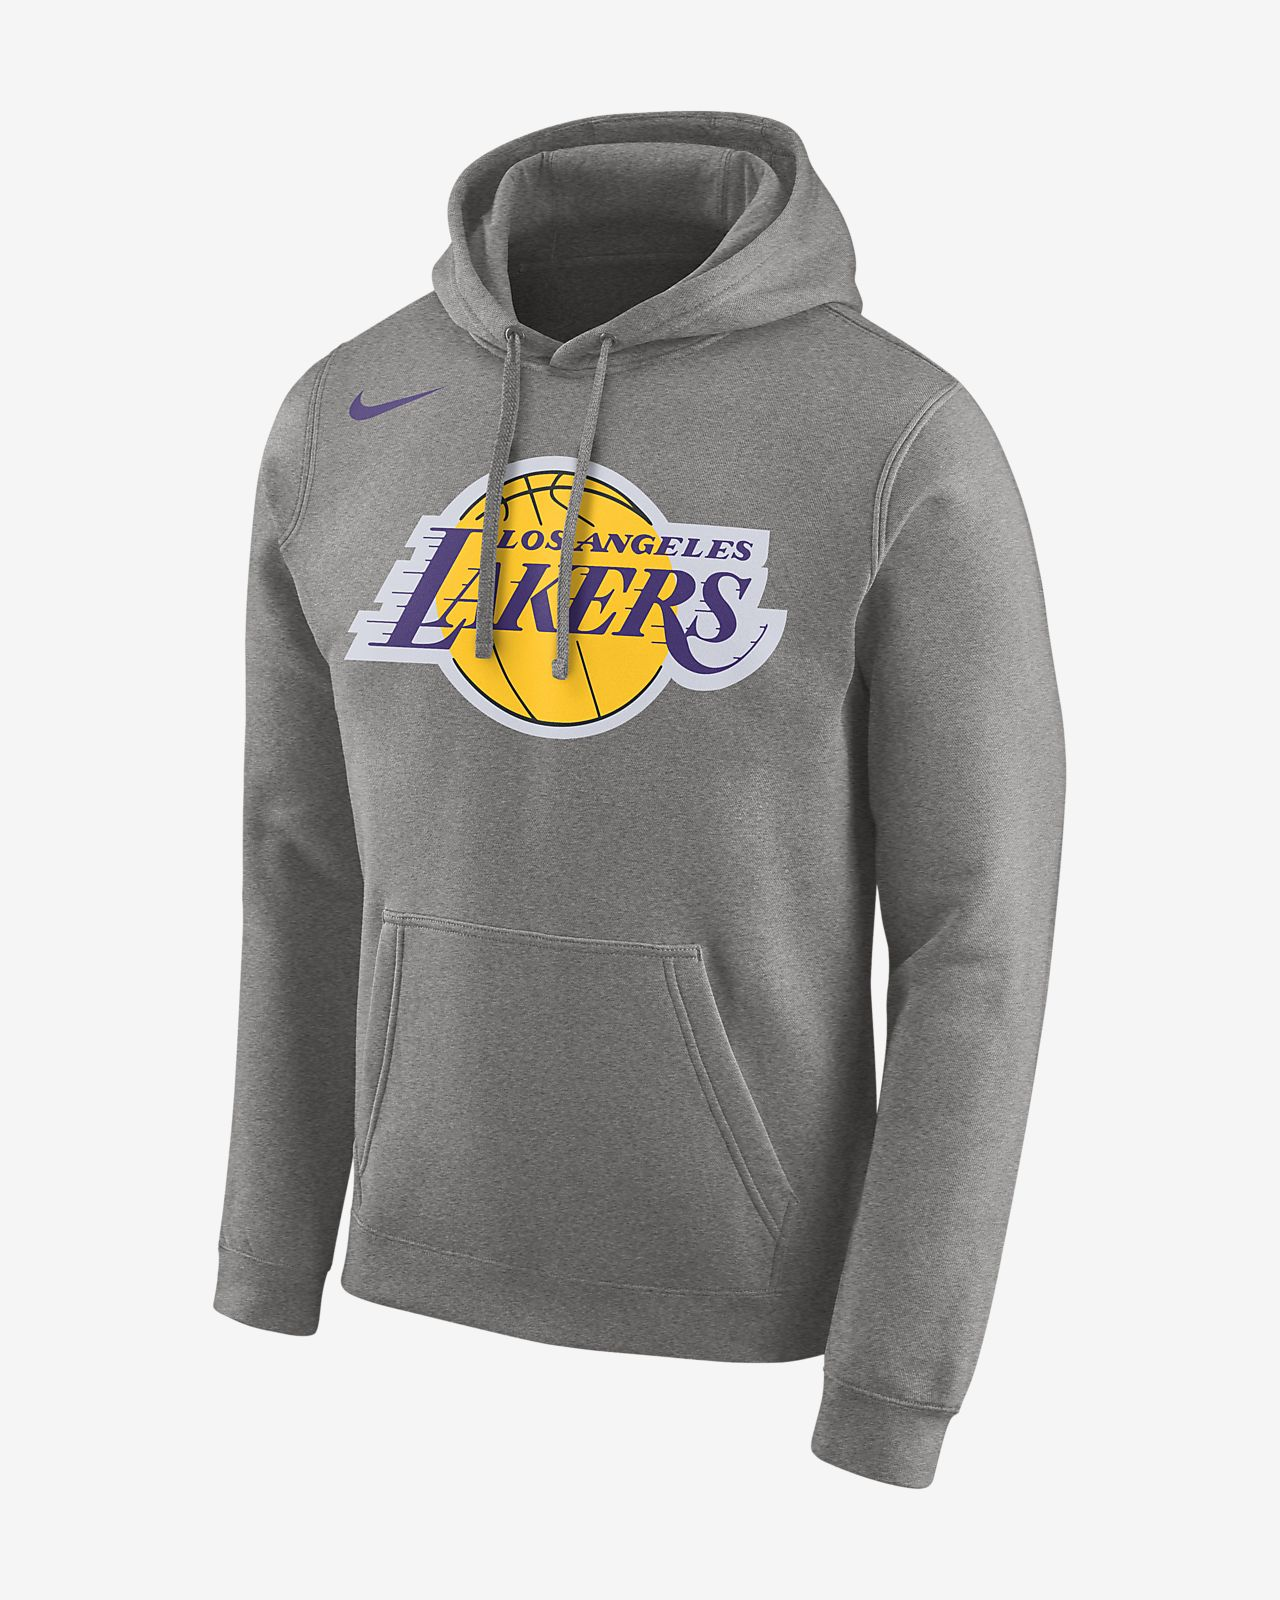 Hoodie Nike Men's Ro Los Logo Lakers Nba Angeles wqxYU7